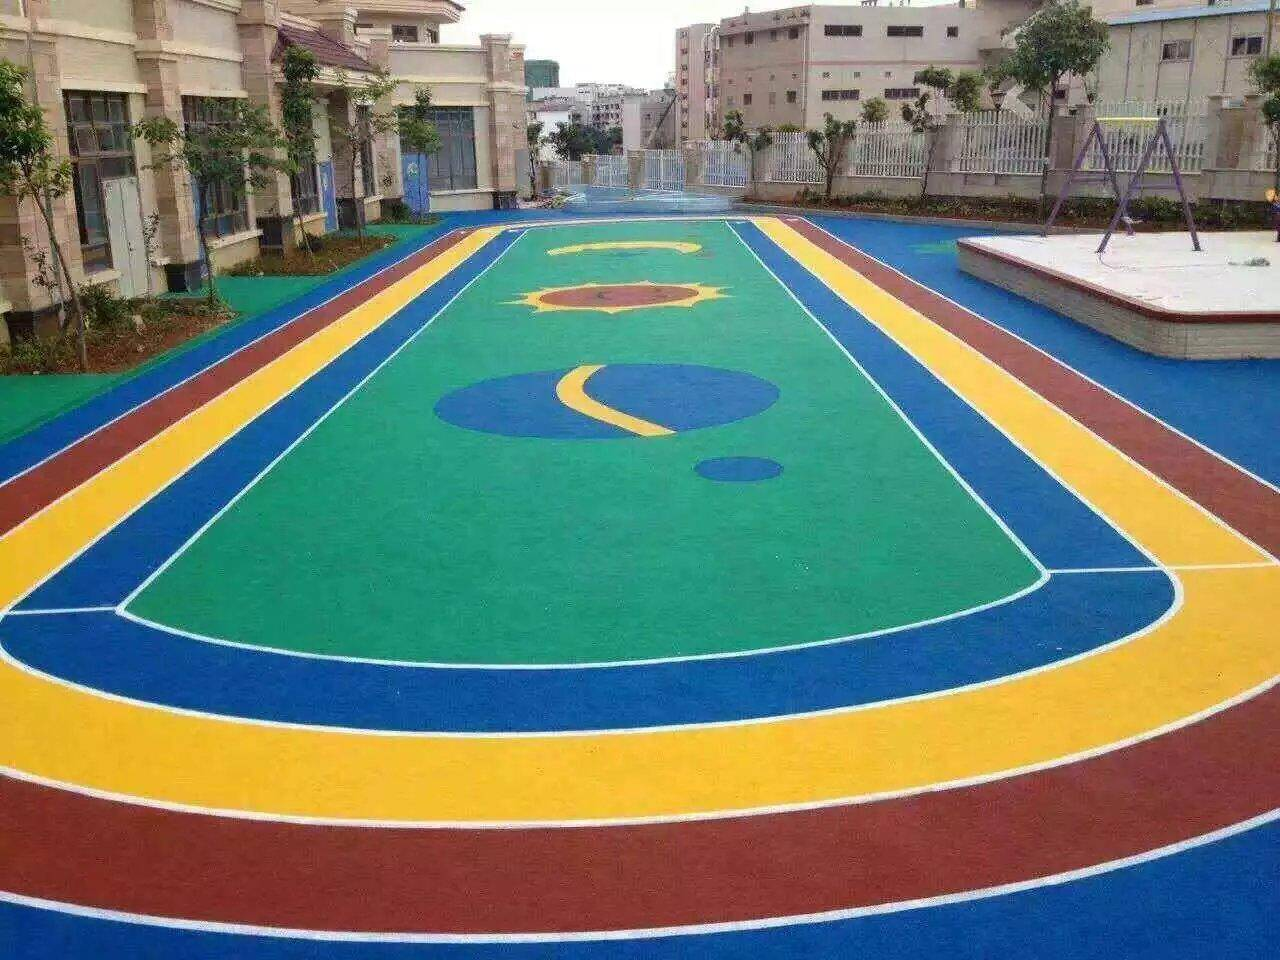 What are the particularities of the color design of the color pavement